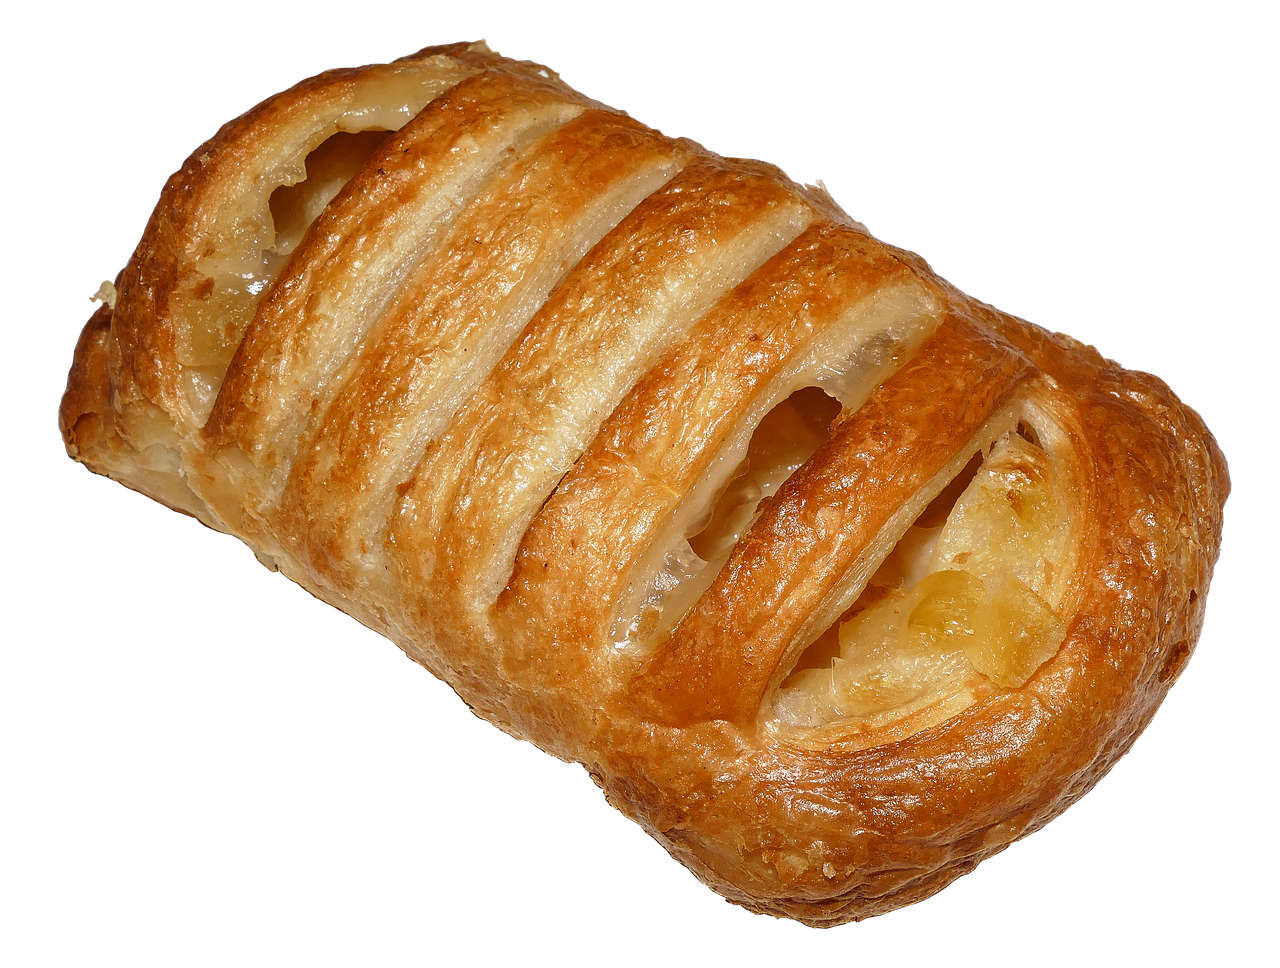 apple-turnover-2546799_1280.png